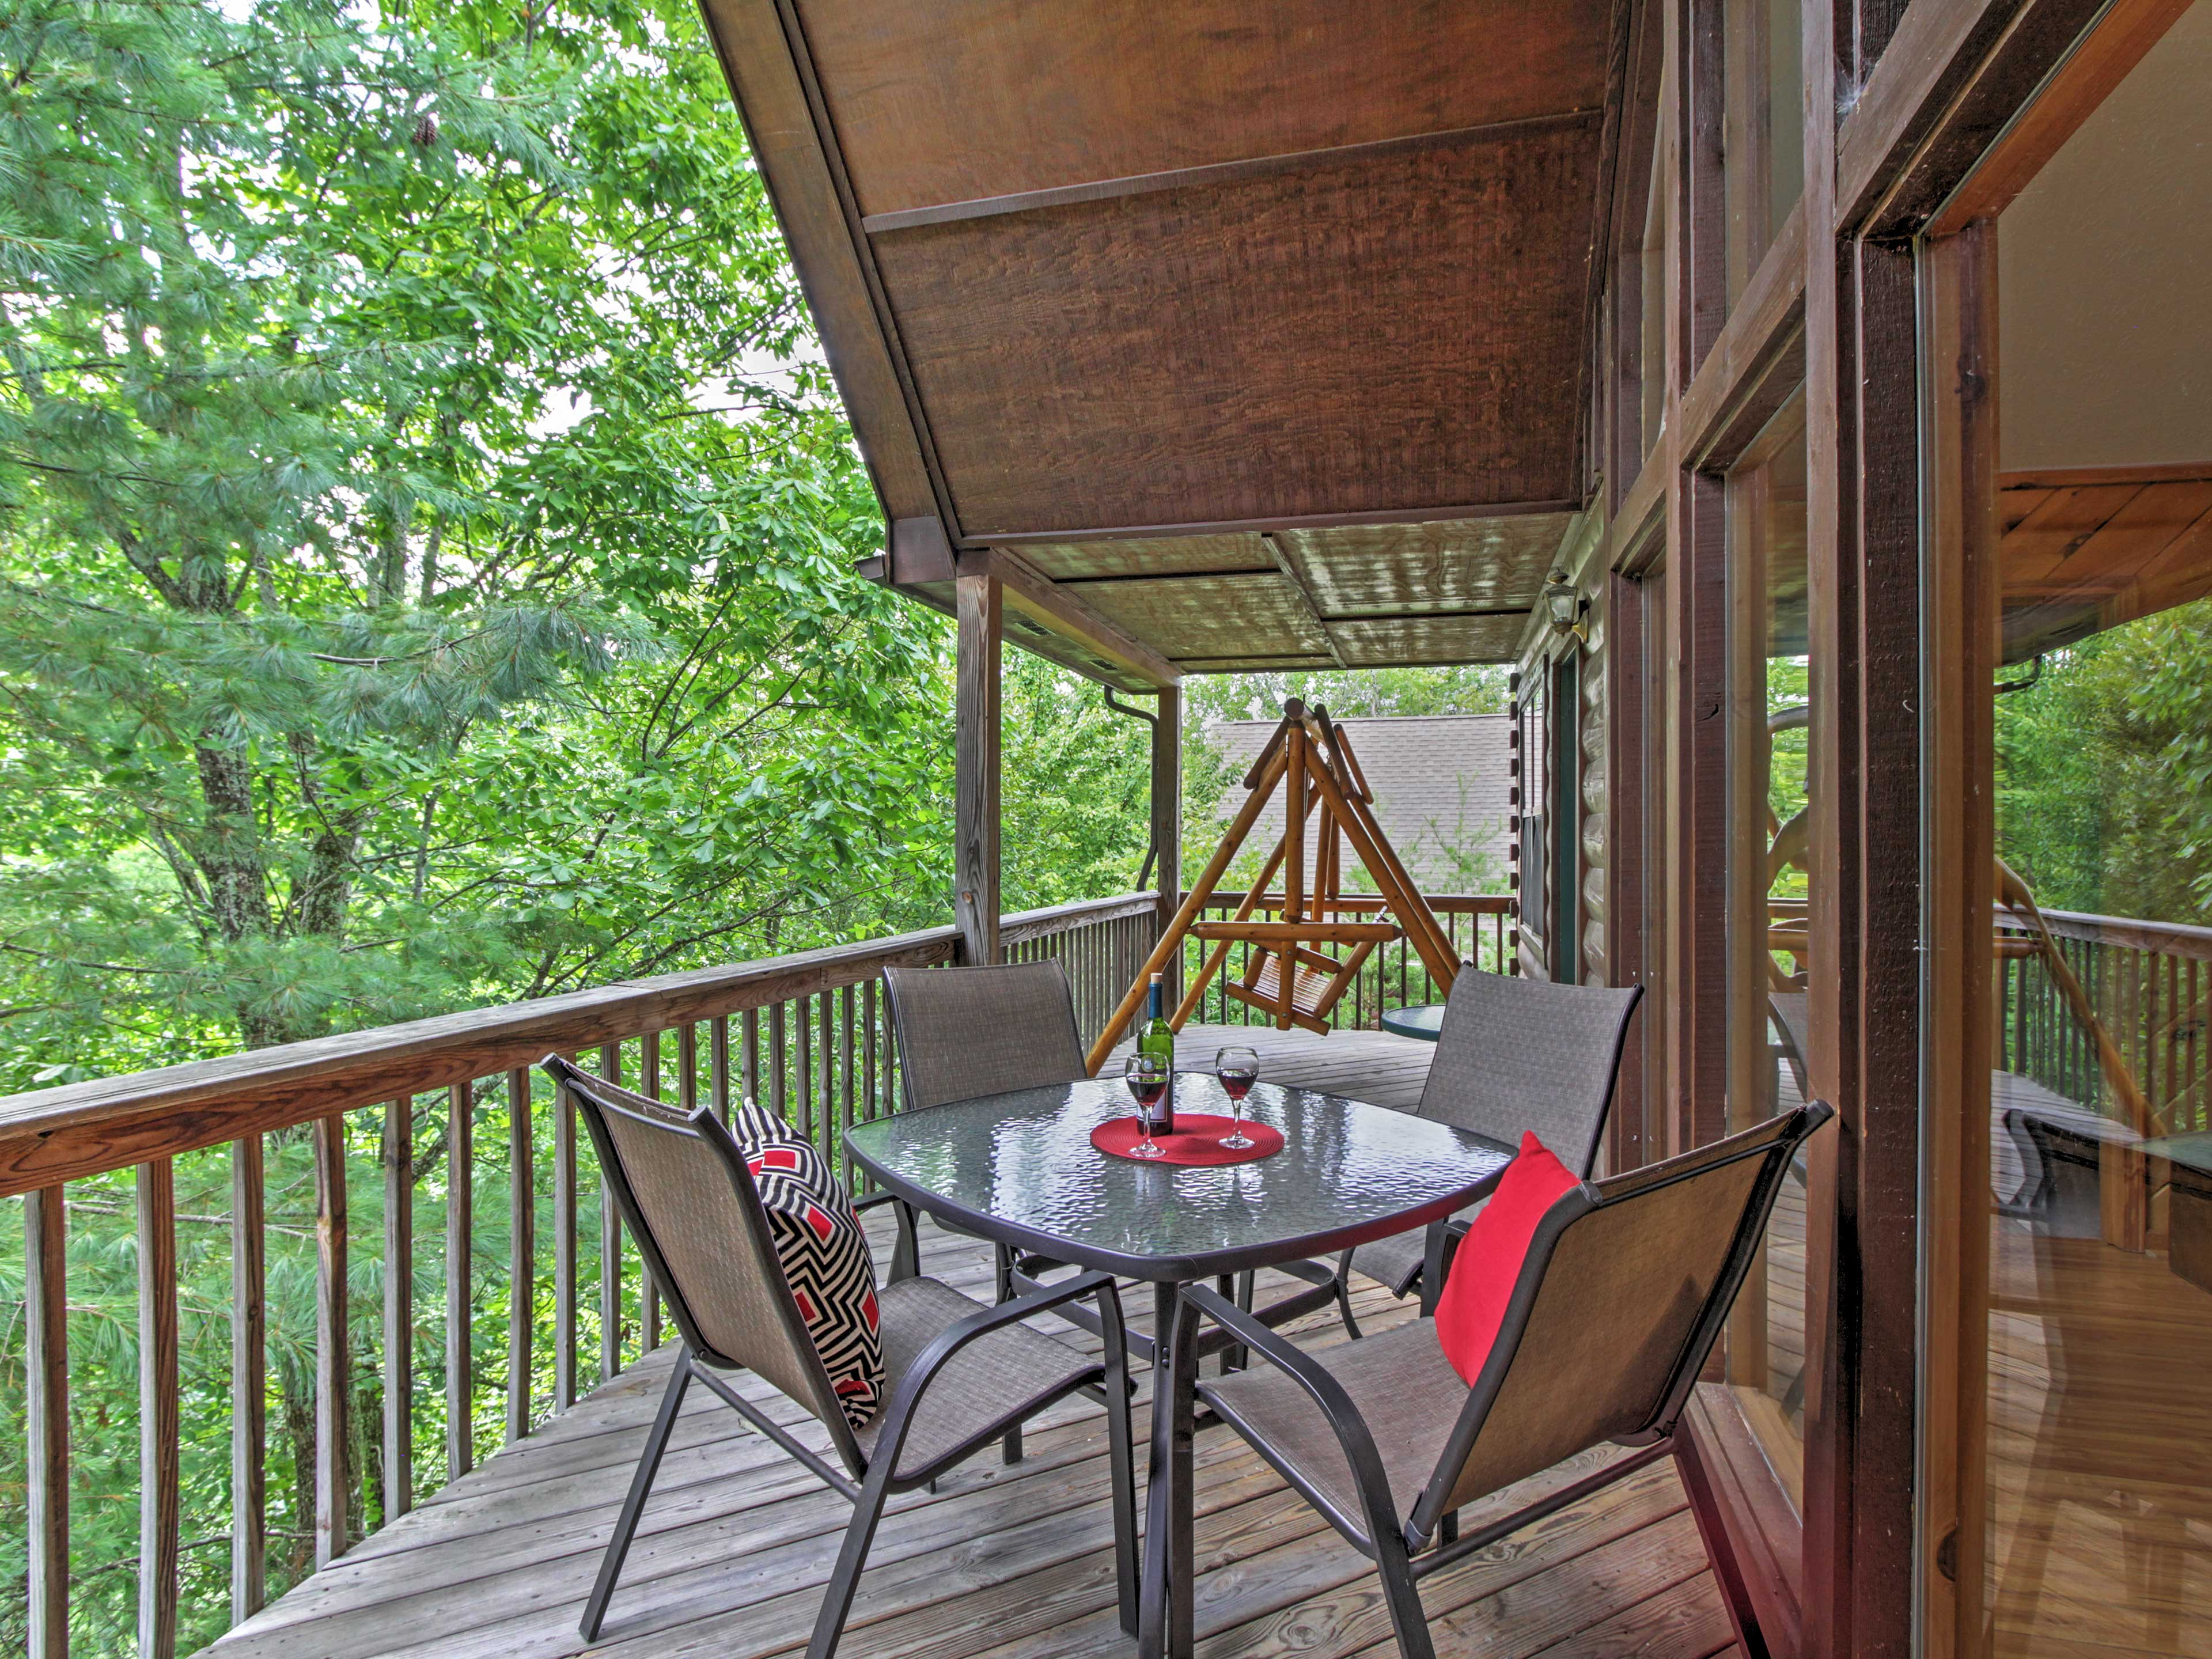 Share meals al fresco or swing while enjoying the views!